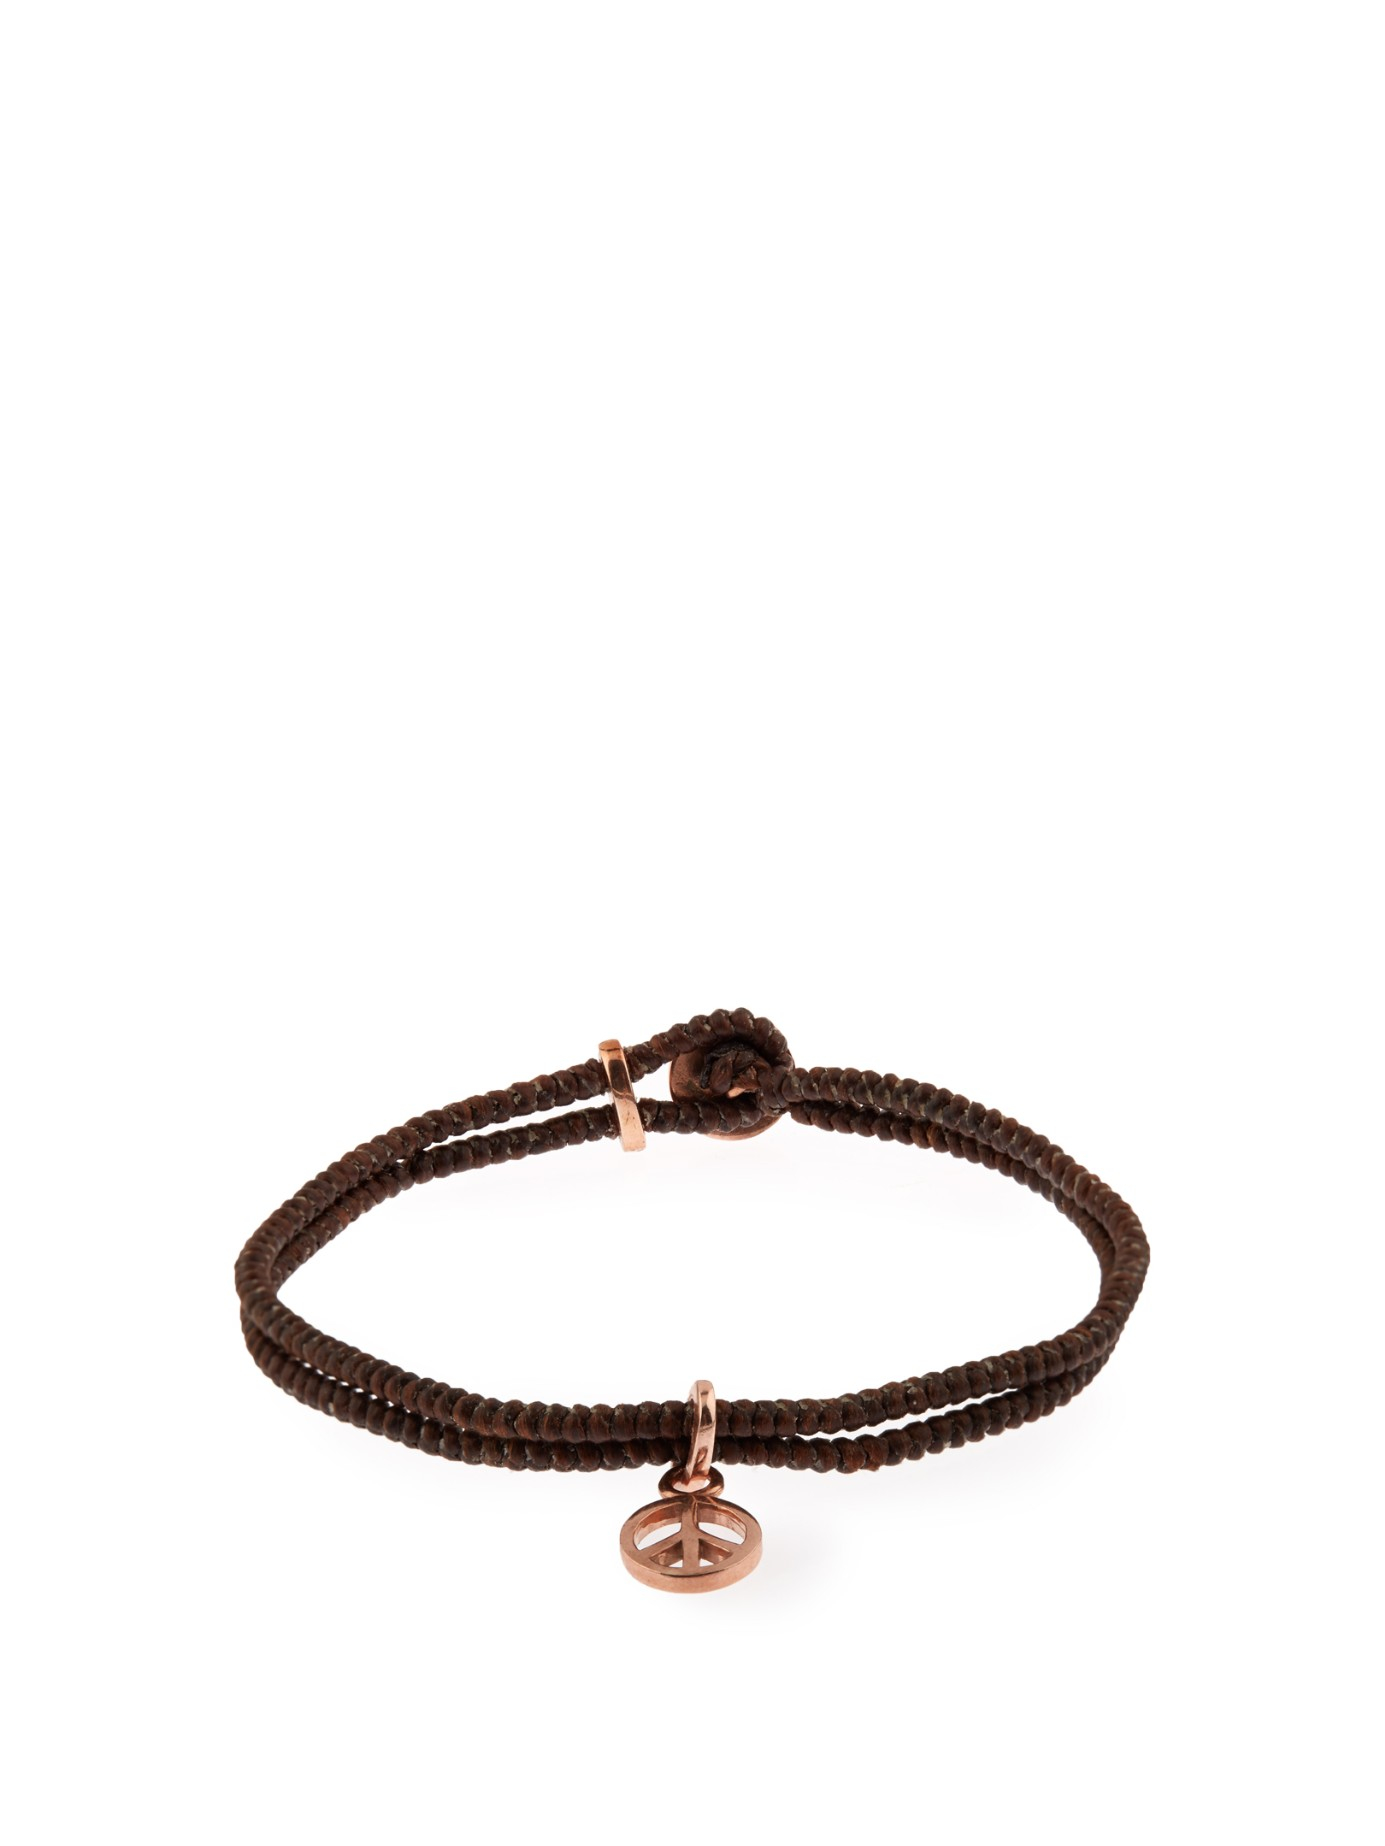 Paul smith Peace Charm Leather Bracelet in Brown for Men